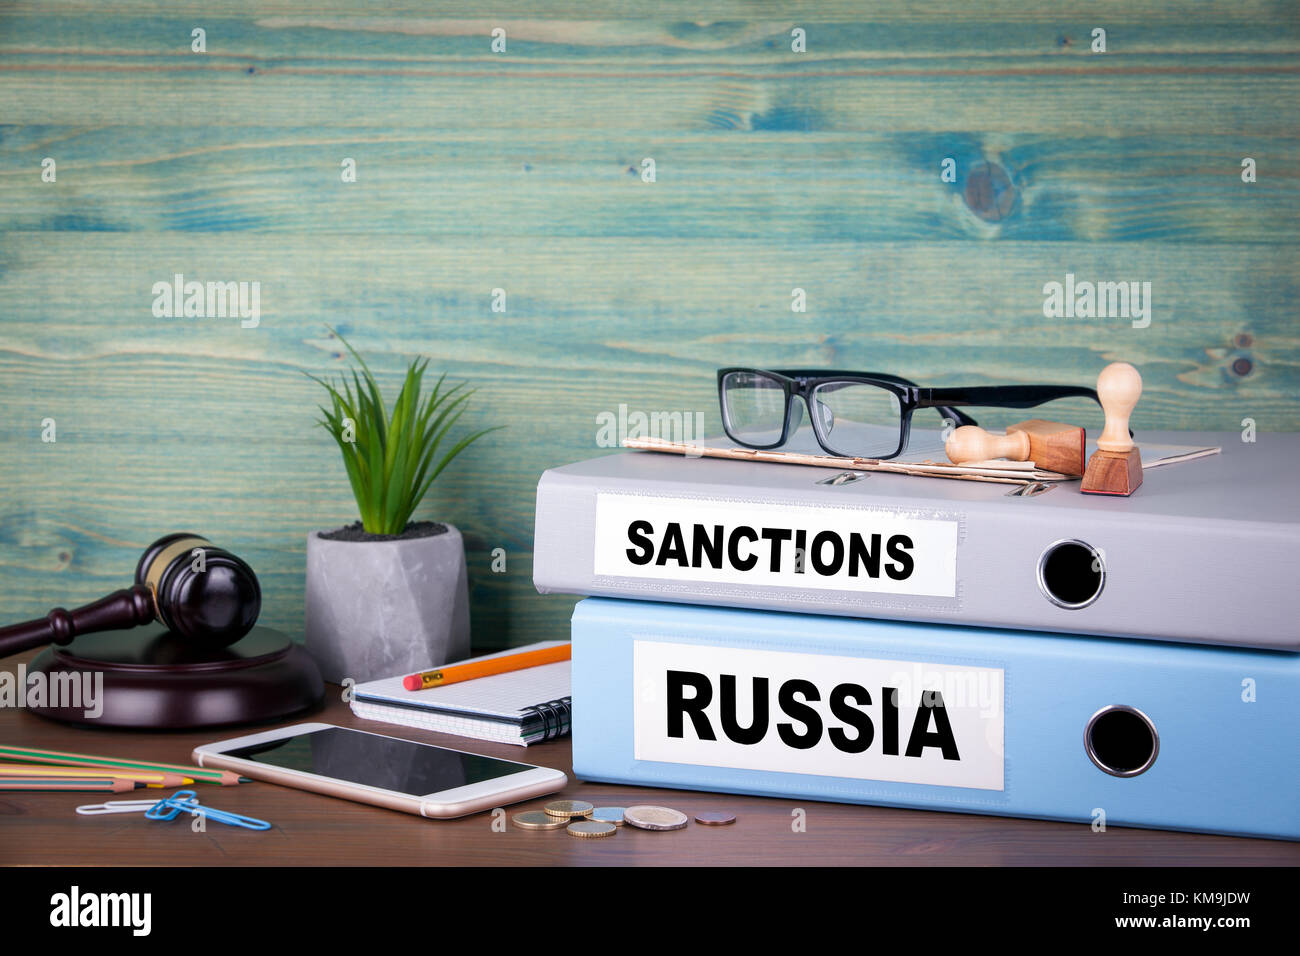 Russia and sanctions concept. Politics and business relations - Stock Image